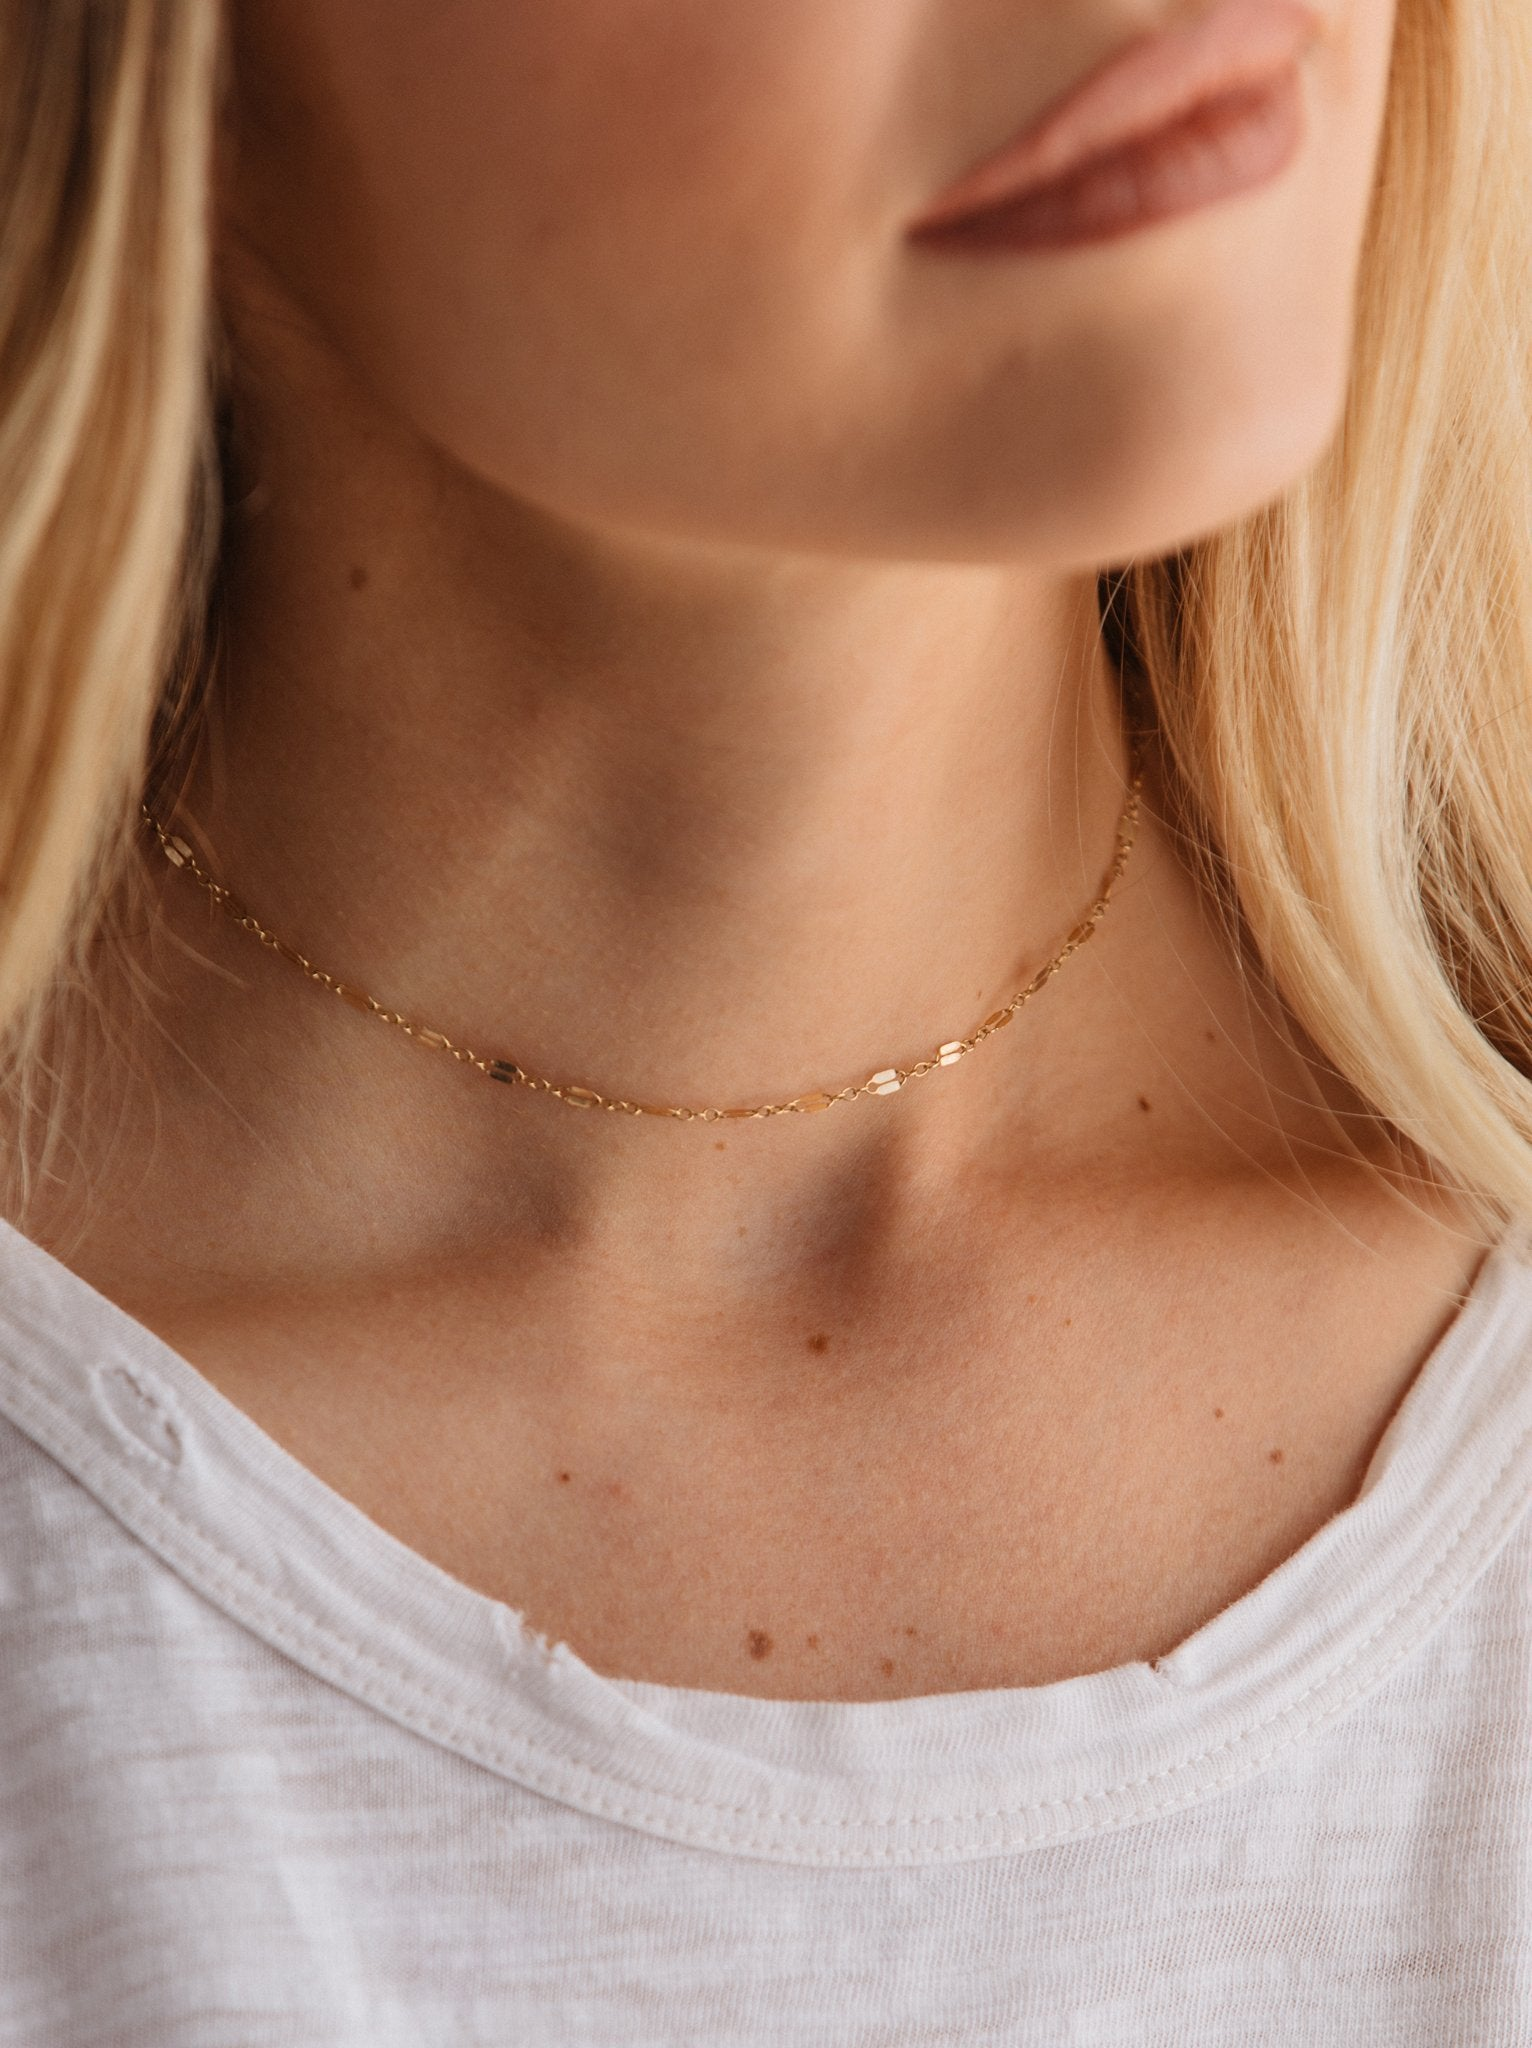 fab'rik - Metal Link Choker: Gold ProductImage-14321060216890